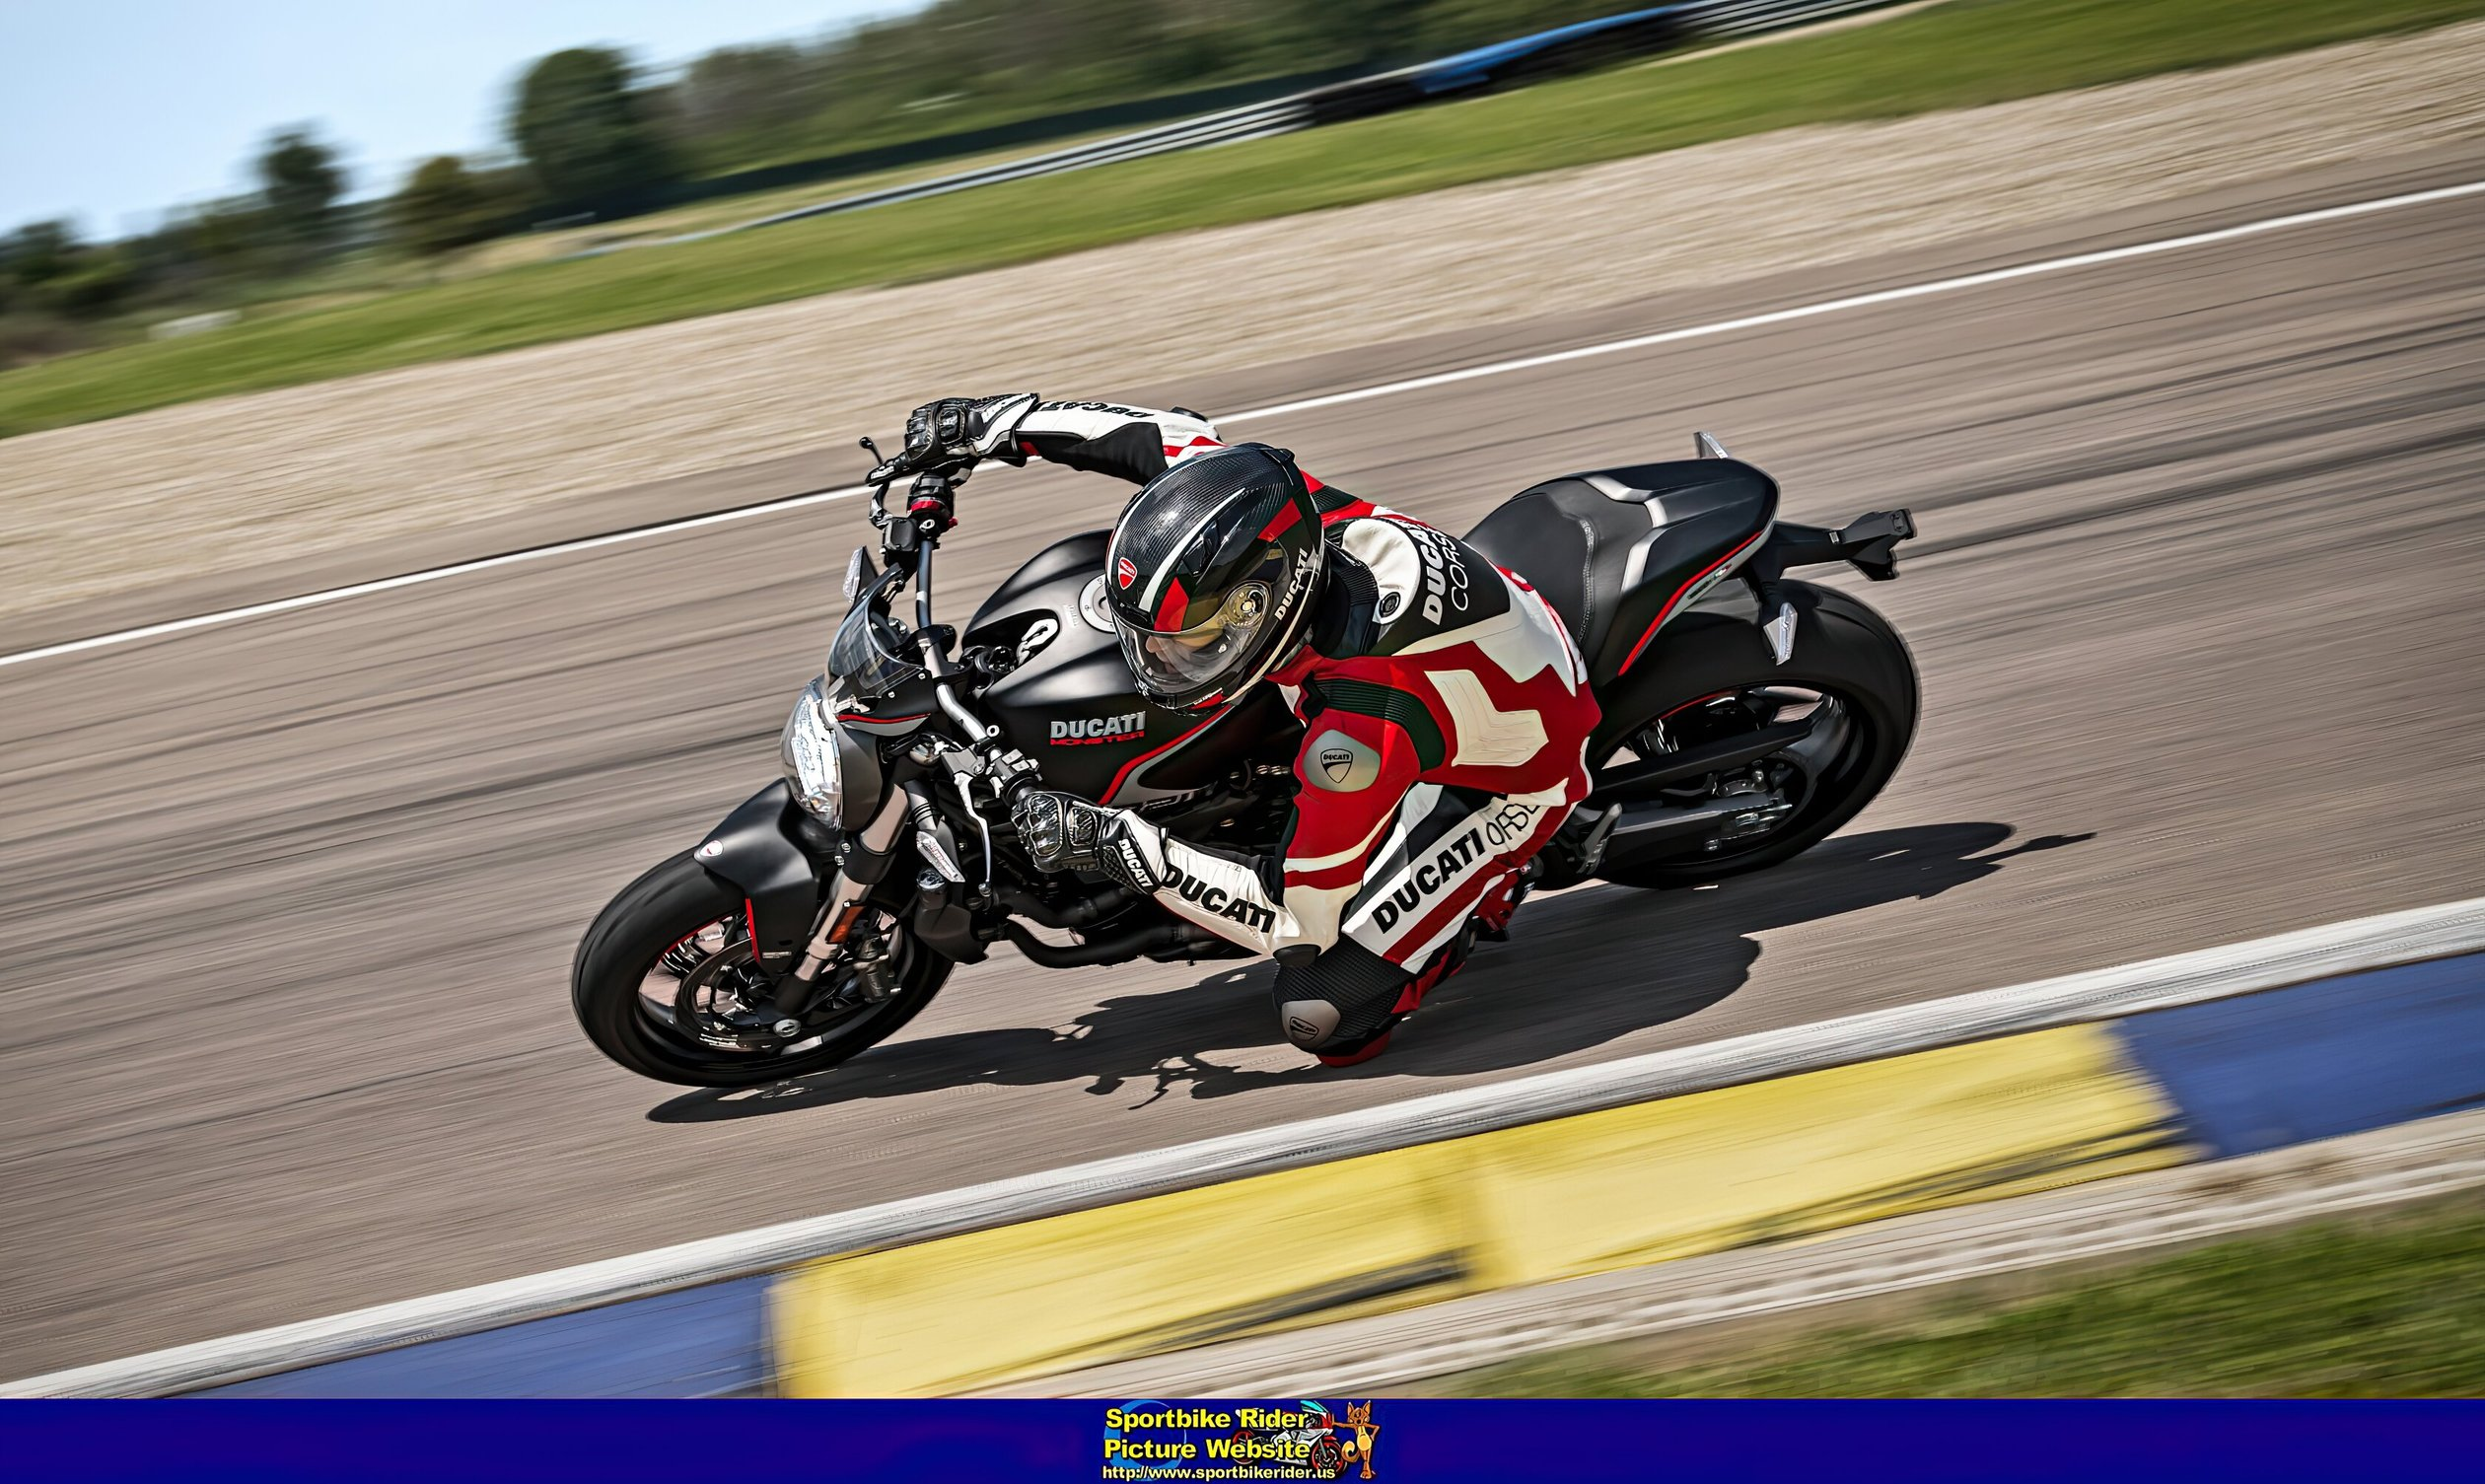 Ducati Monster Models - ID: 750154